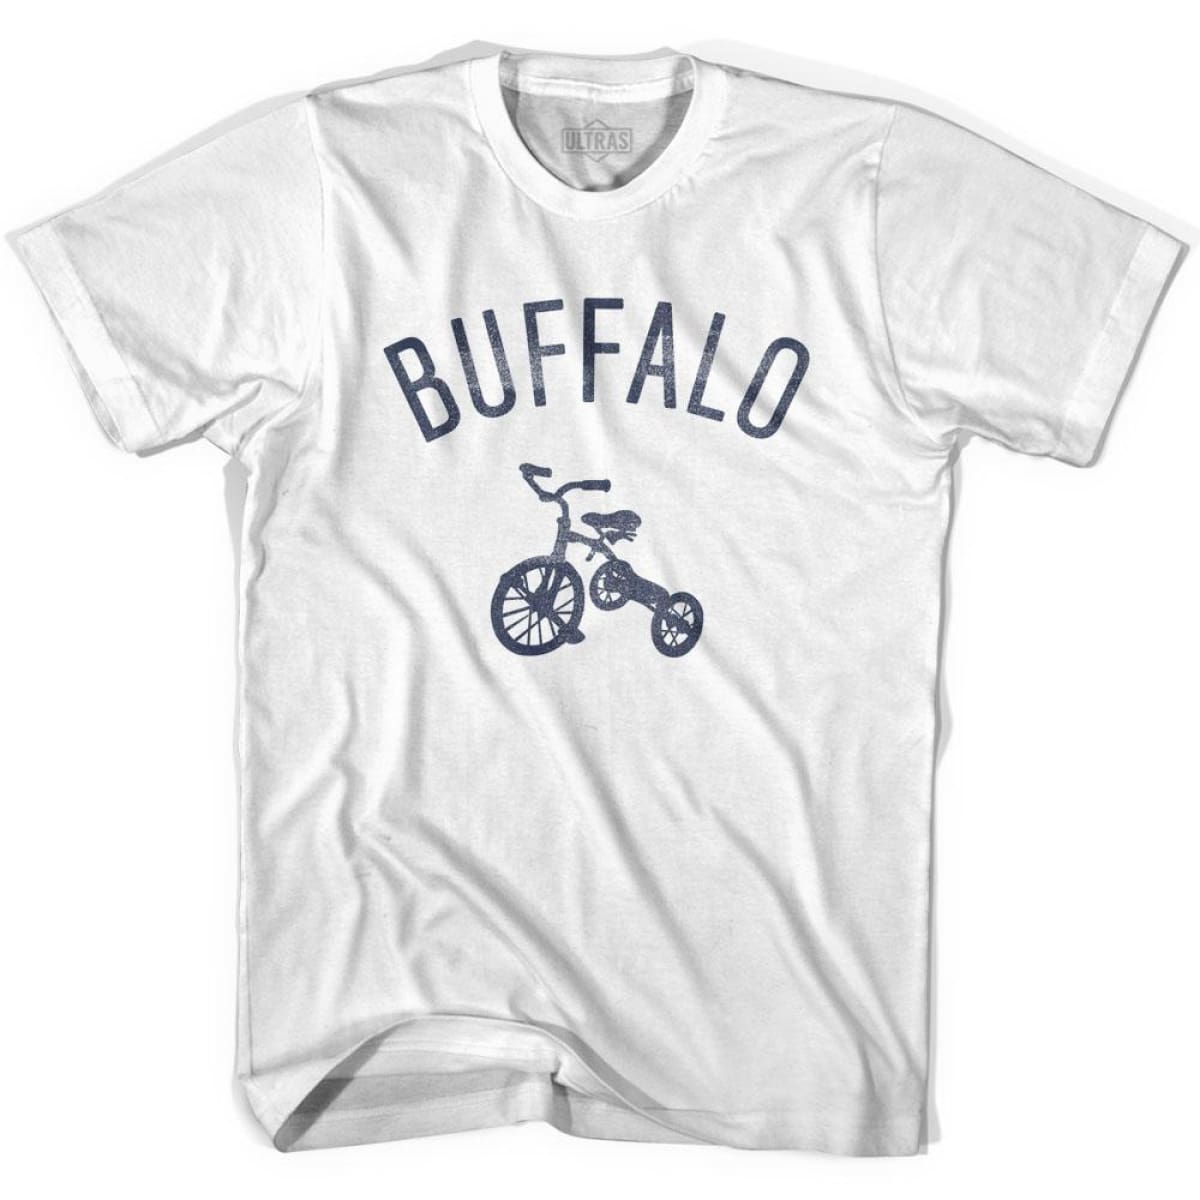 Buffalo City Tricycle Youth Cotton T-shirt - Tricycle City